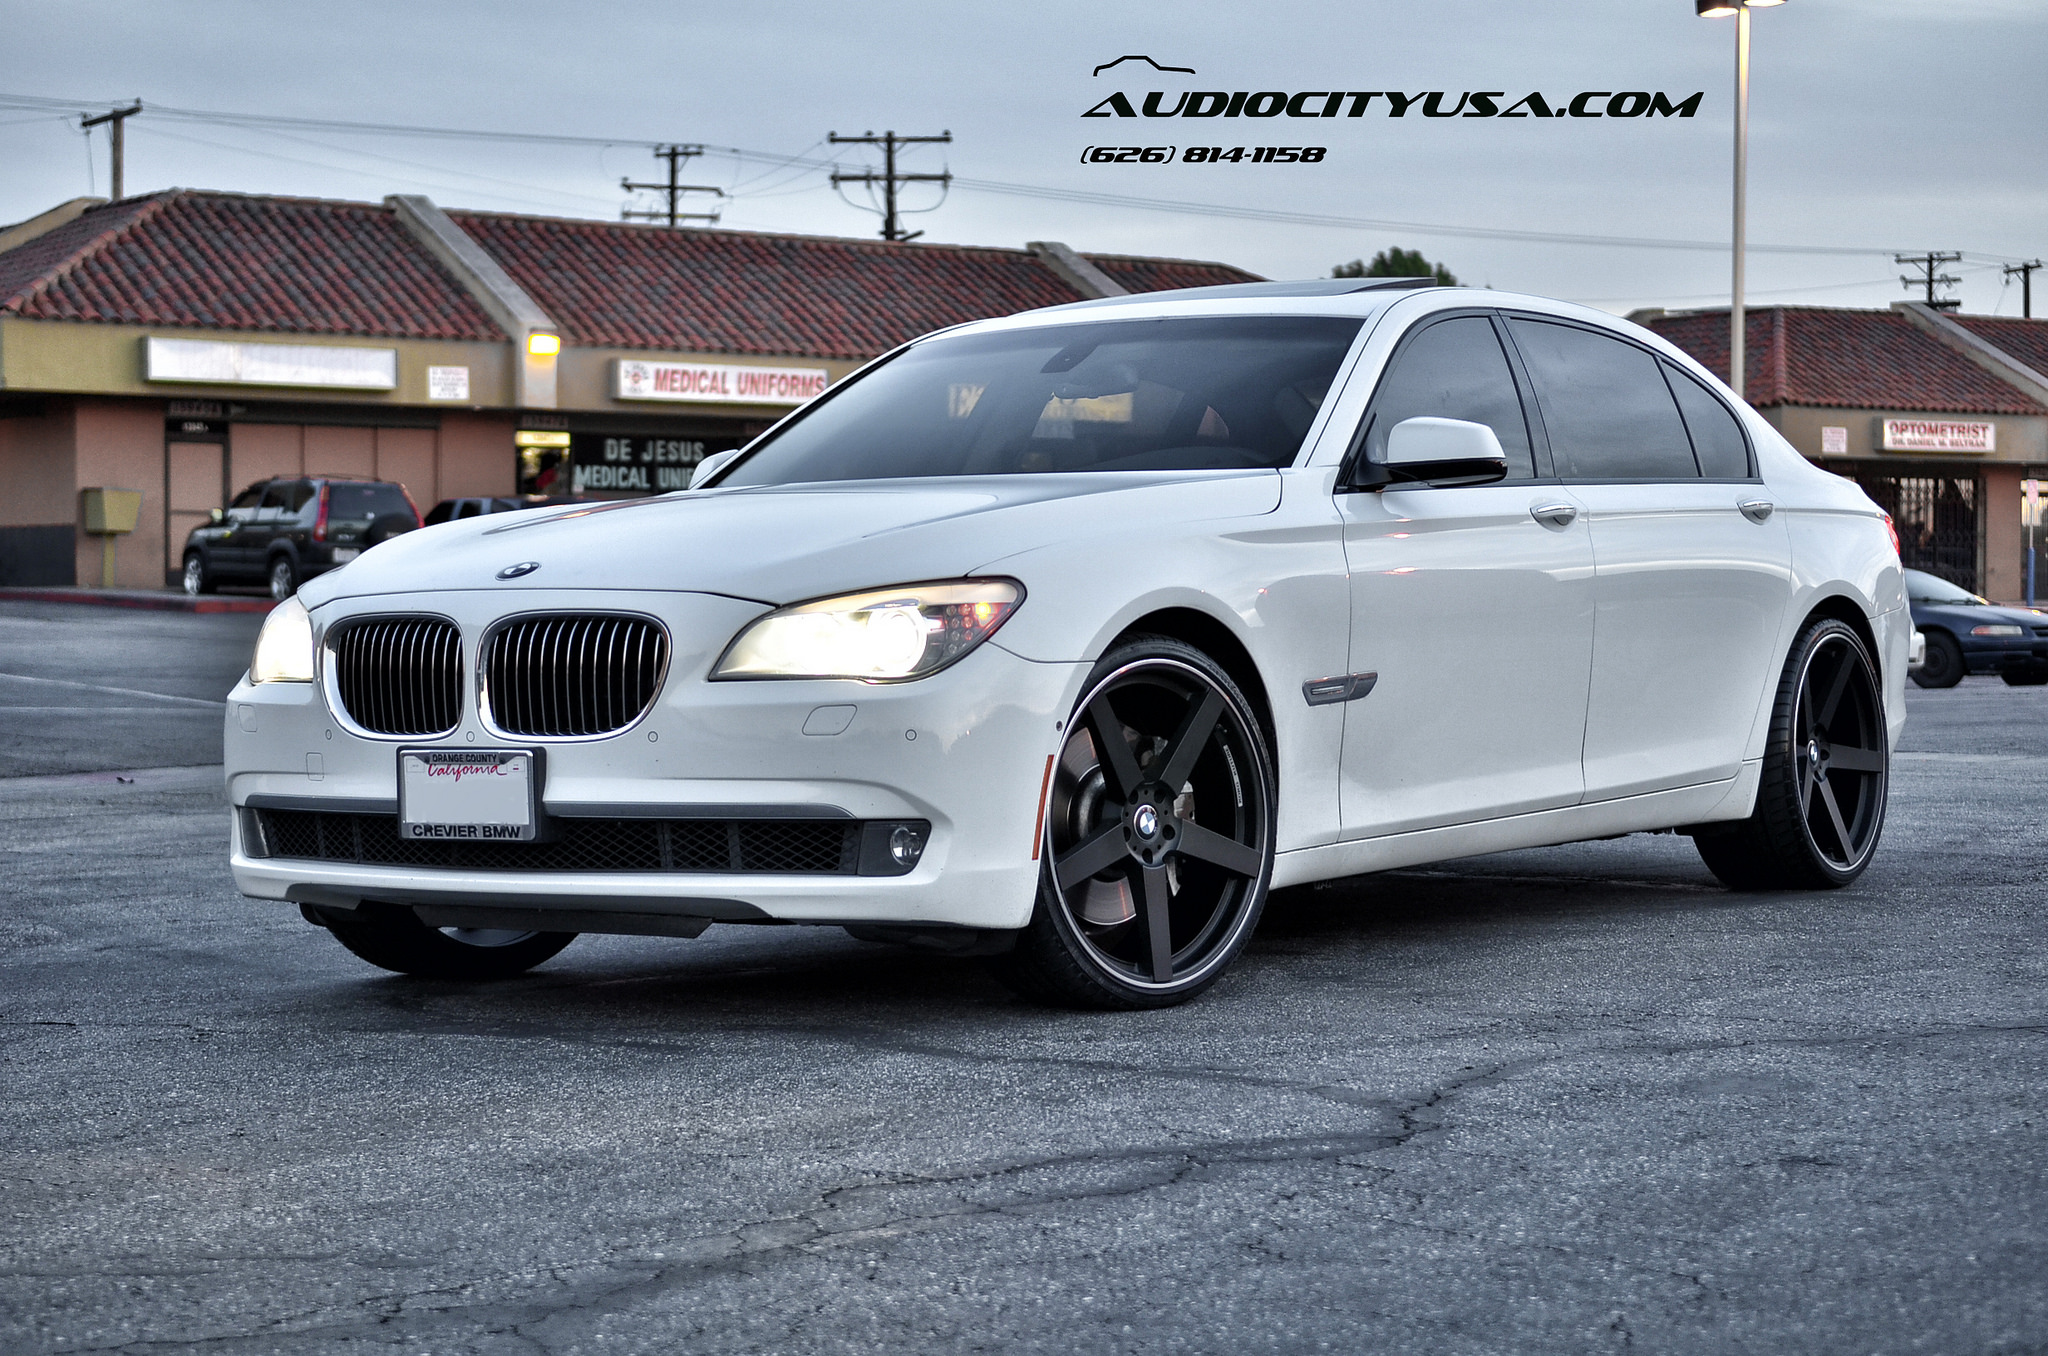 Koko Kuture Sardinia-5 r22 matte black on 2011 BMW 750 LI